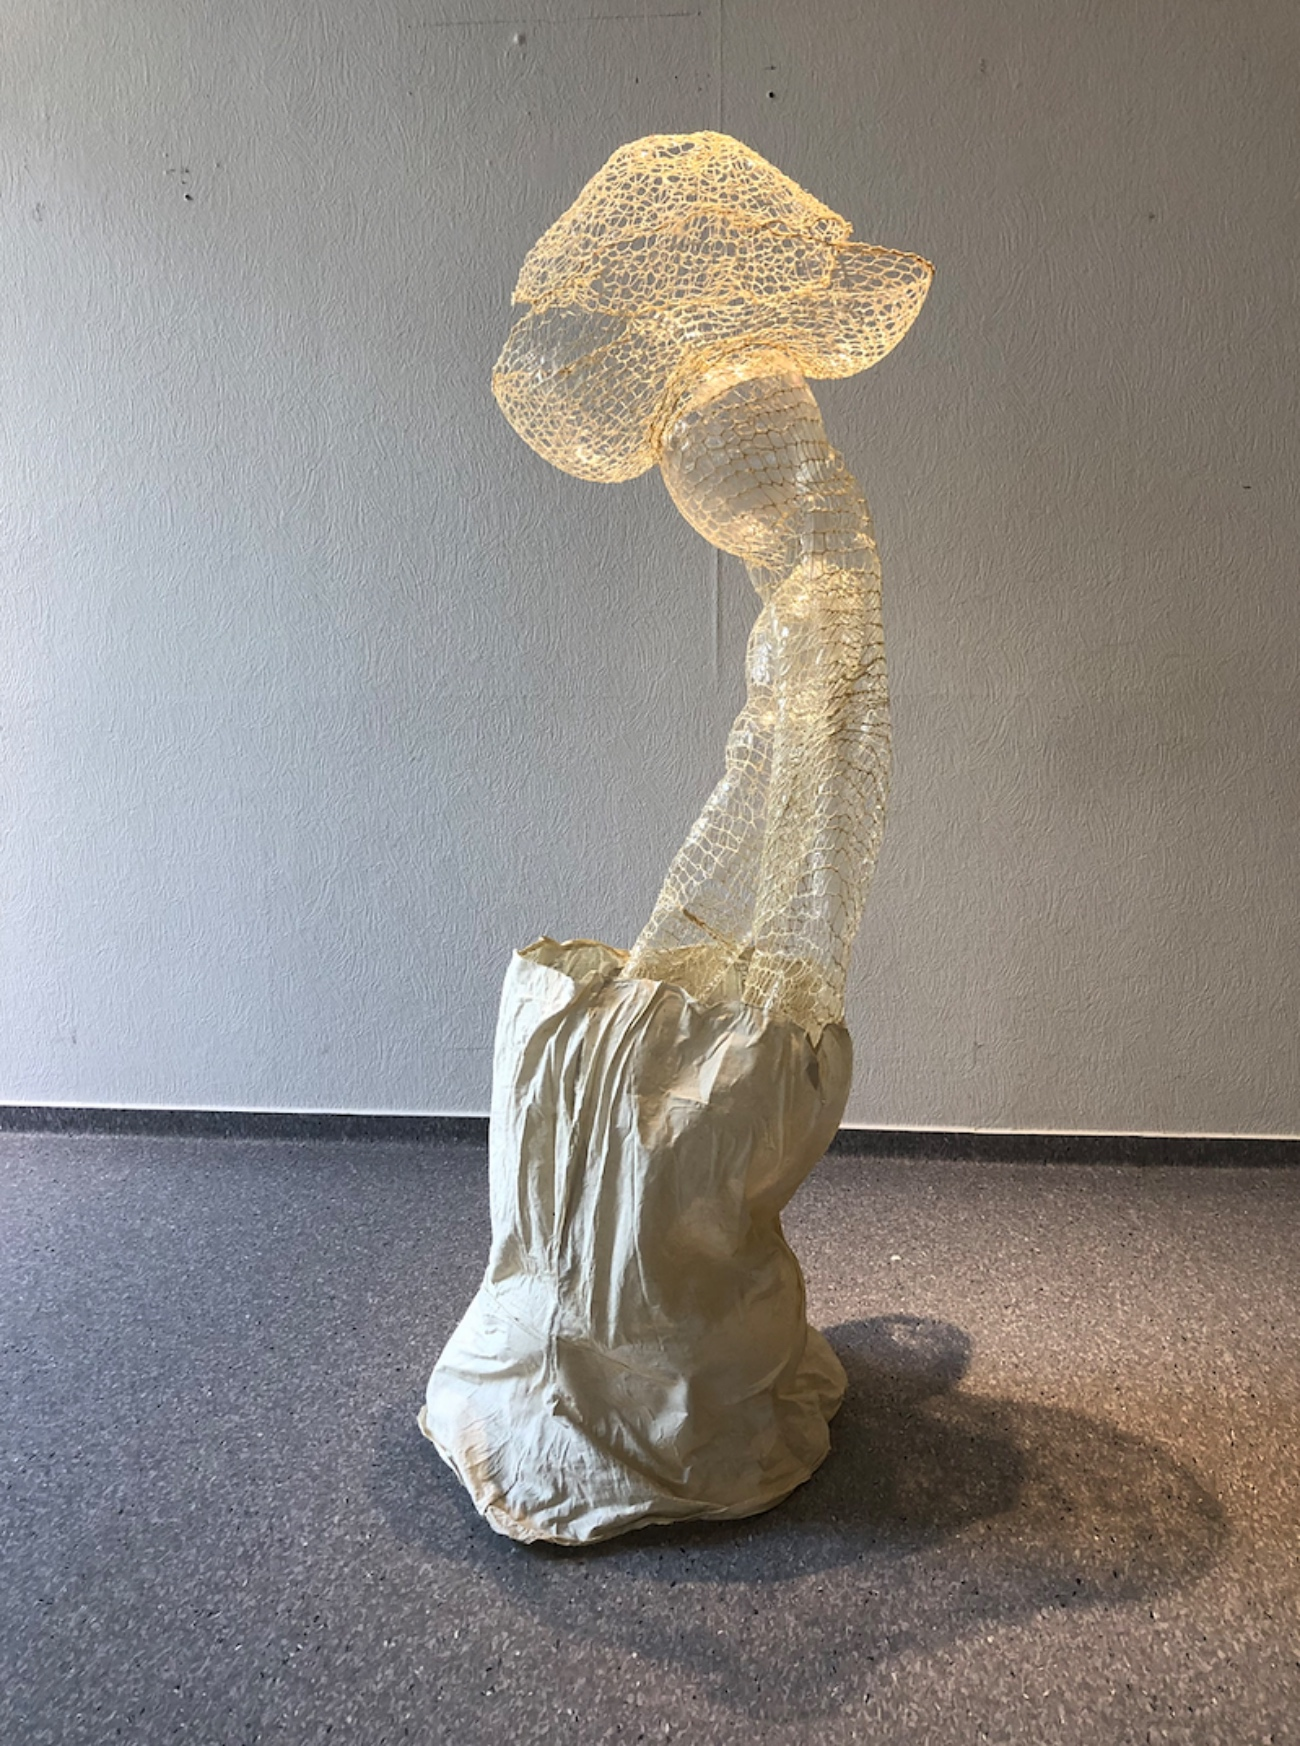 A Point of Balance, 2019, Yarn fabric and glue, approximately 51 x 15 x 15 inches, $400